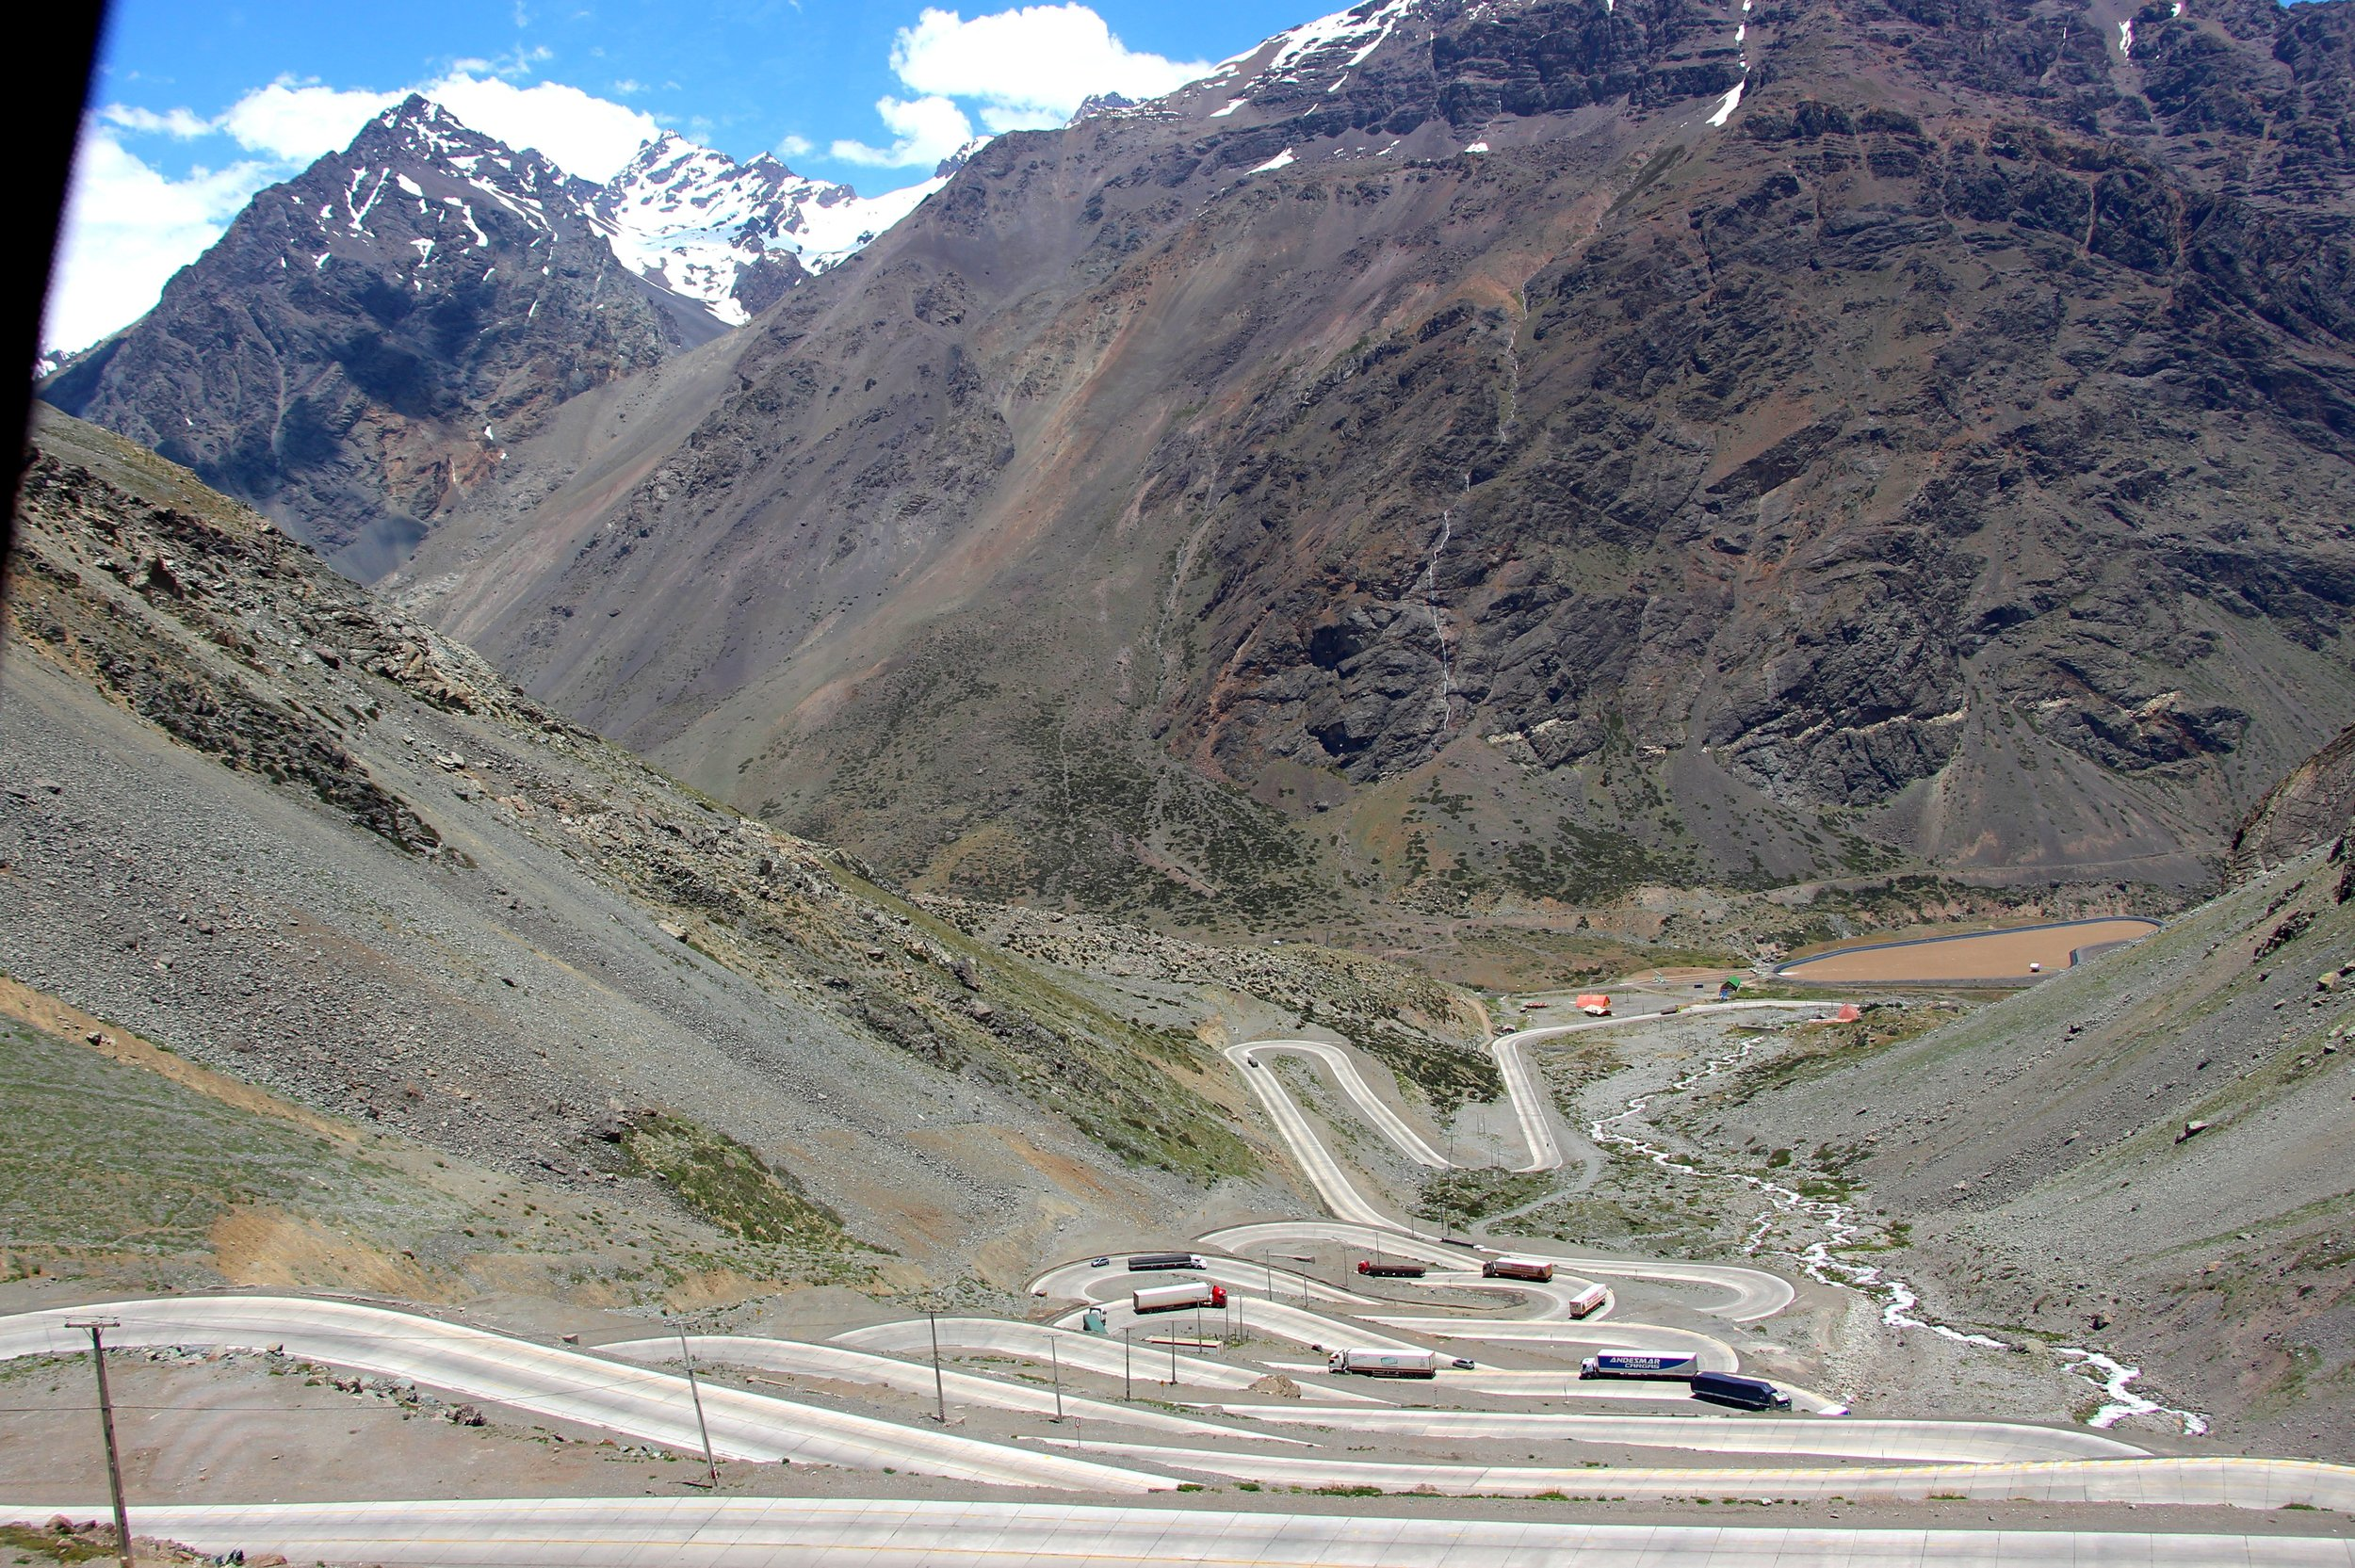 We crossed through the Andes to get to Chile and there were some pretty tight turns along the way!